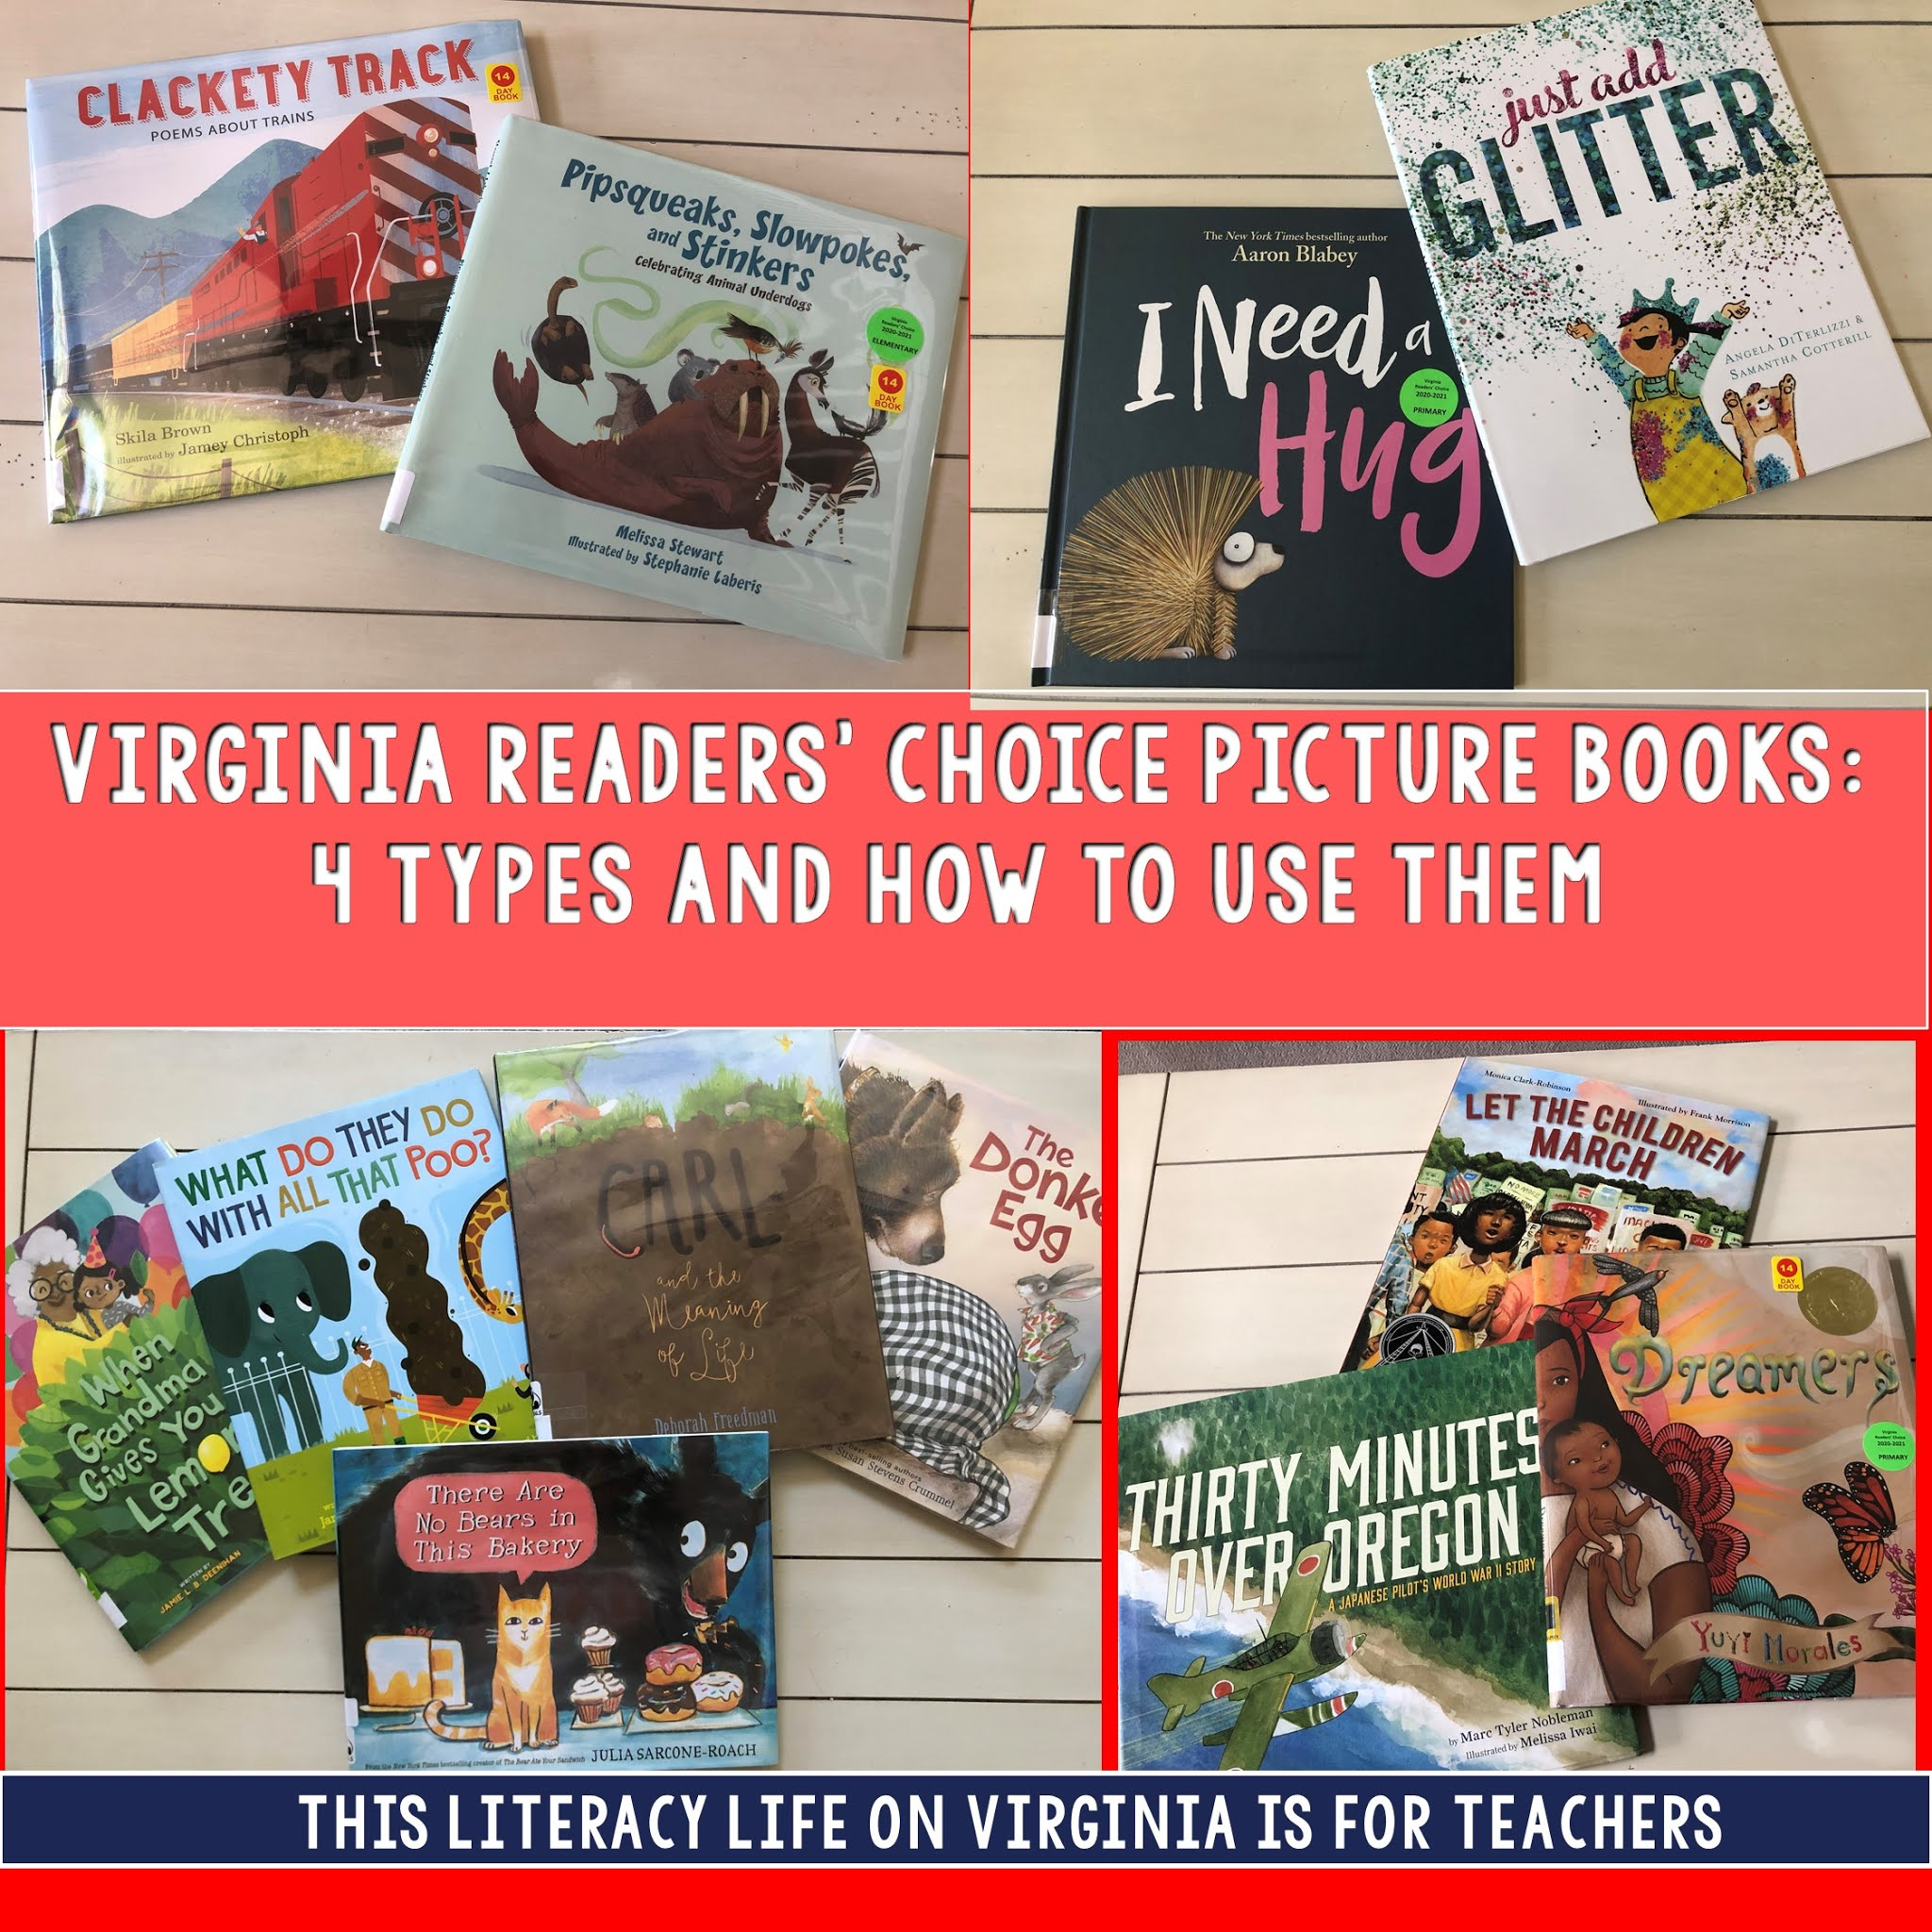 Picture books are great for reading aloud and helpful for teaching various skills and strategies. These picture books will make lessons more exciting!